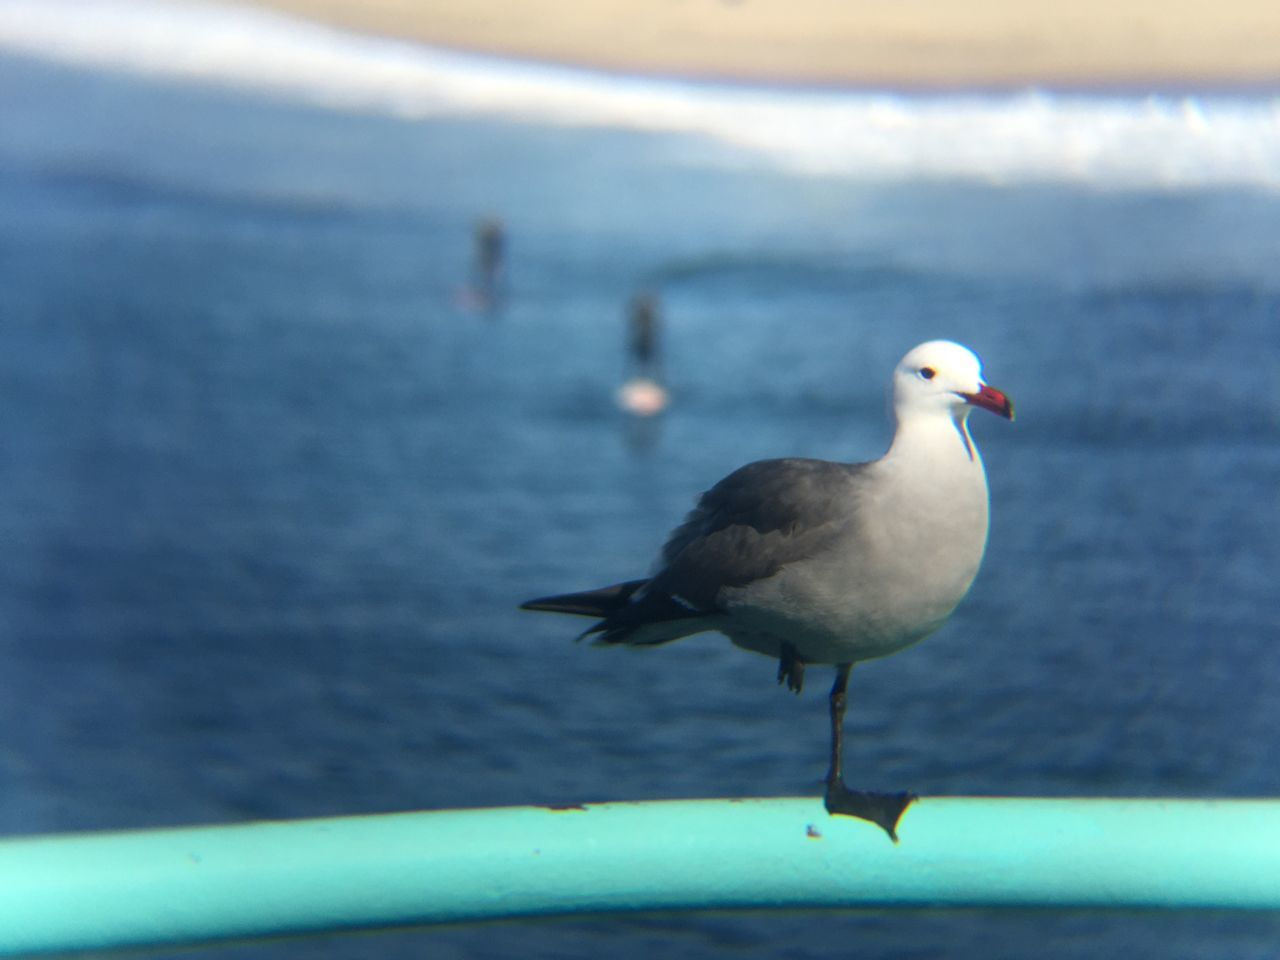 animals in the wild, bird, animal themes, one animal, animal wildlife, seagull, focus on foreground, water, sea, nature, no people, perching, day, outdoors, close-up, beauty in nature